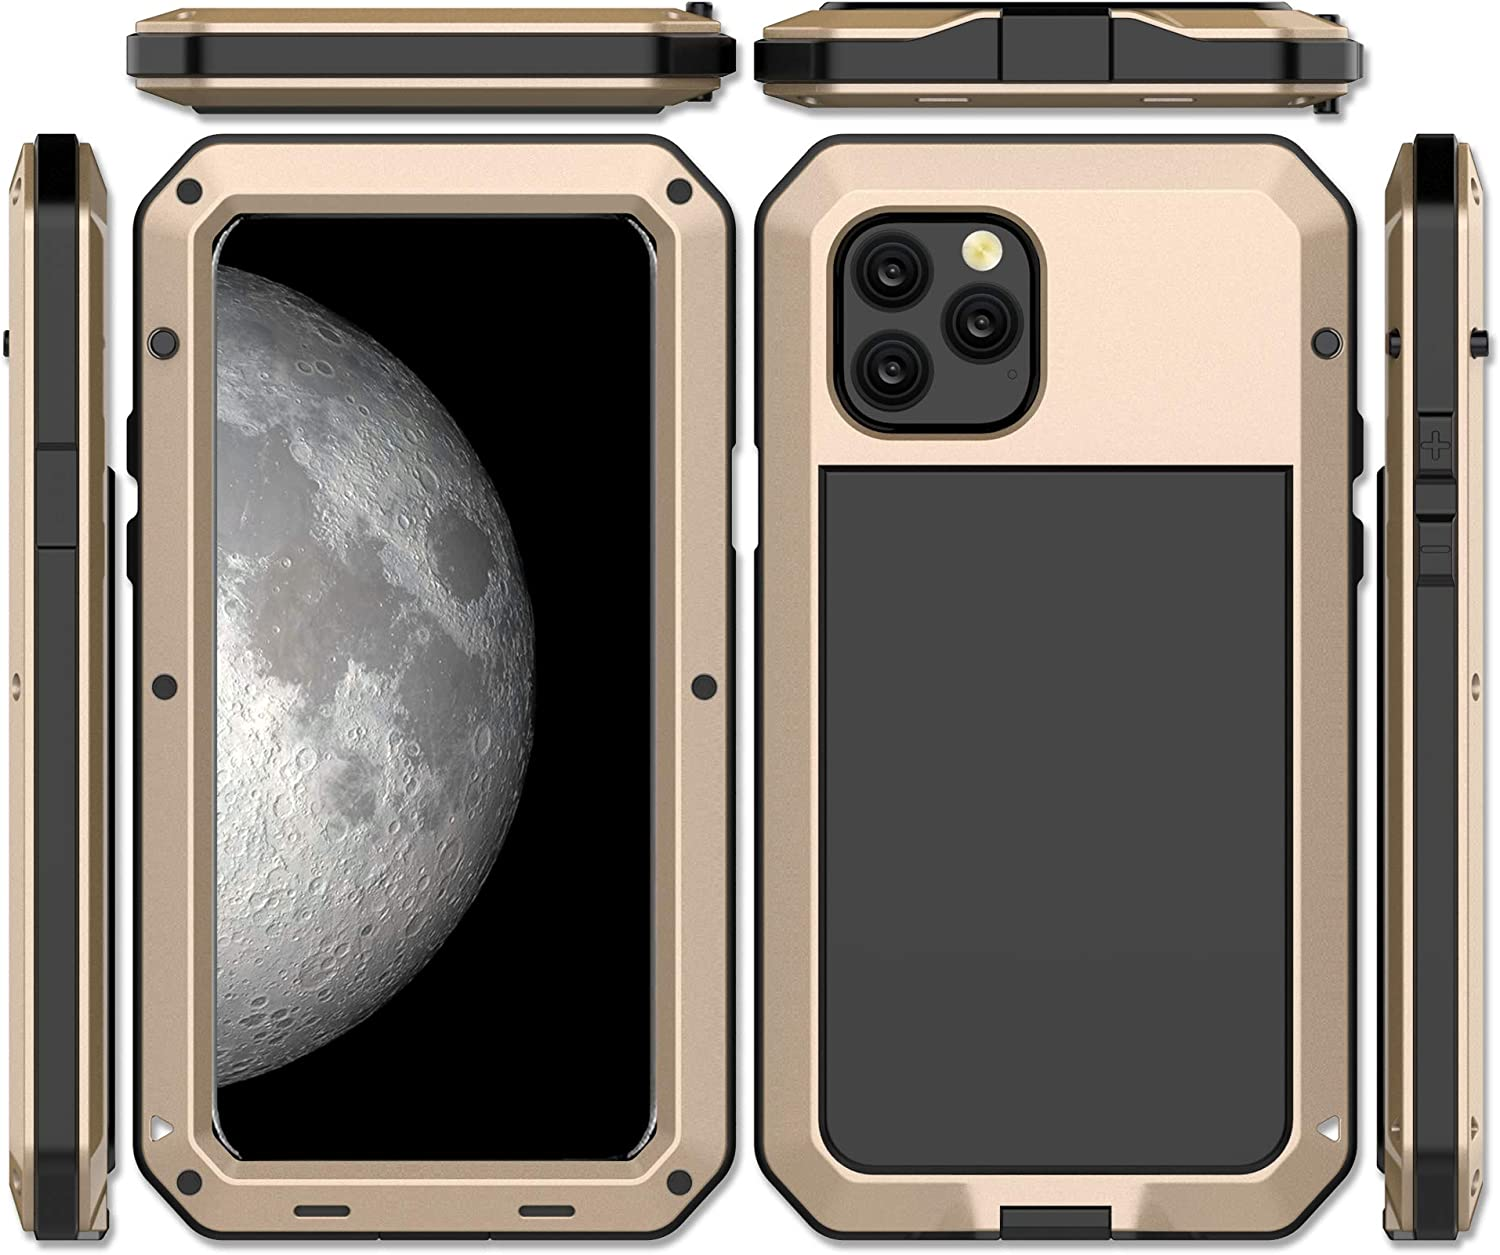 iPhone 11 Case, CarterLily Full Body Shockproof Dustproof Waterproof Aluminum Alloy Metal Gorilla Glass Cover Case for Apple iPhone 11 6.1 inch (Gold)